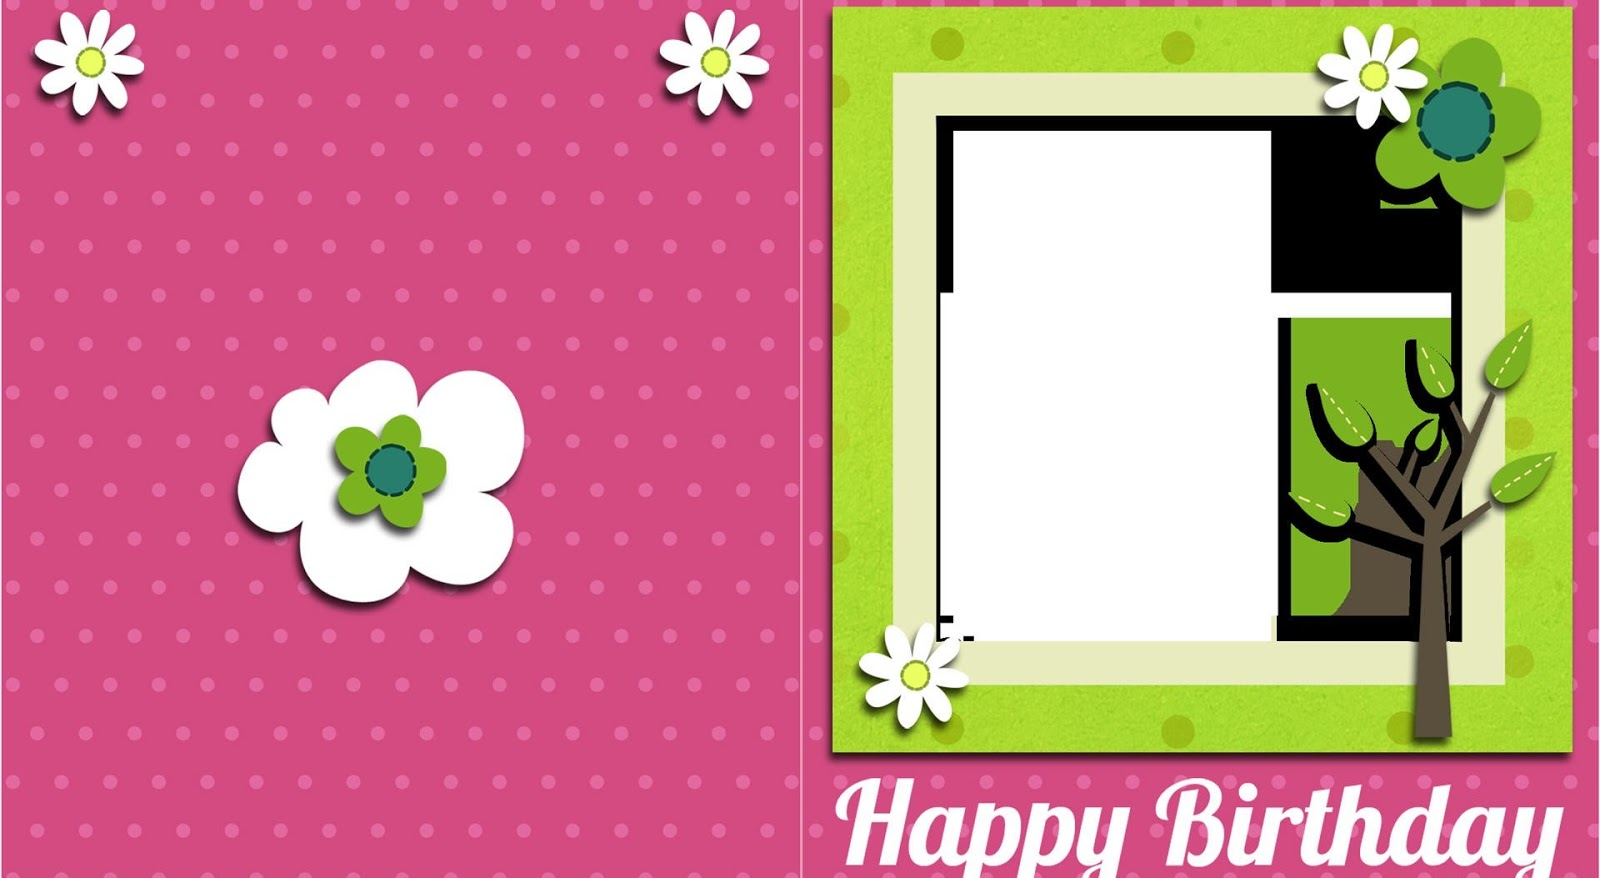 happy birthday wishes pictures free download ; Happy-Birthday-greeting-card-stock-template-HD-free-download